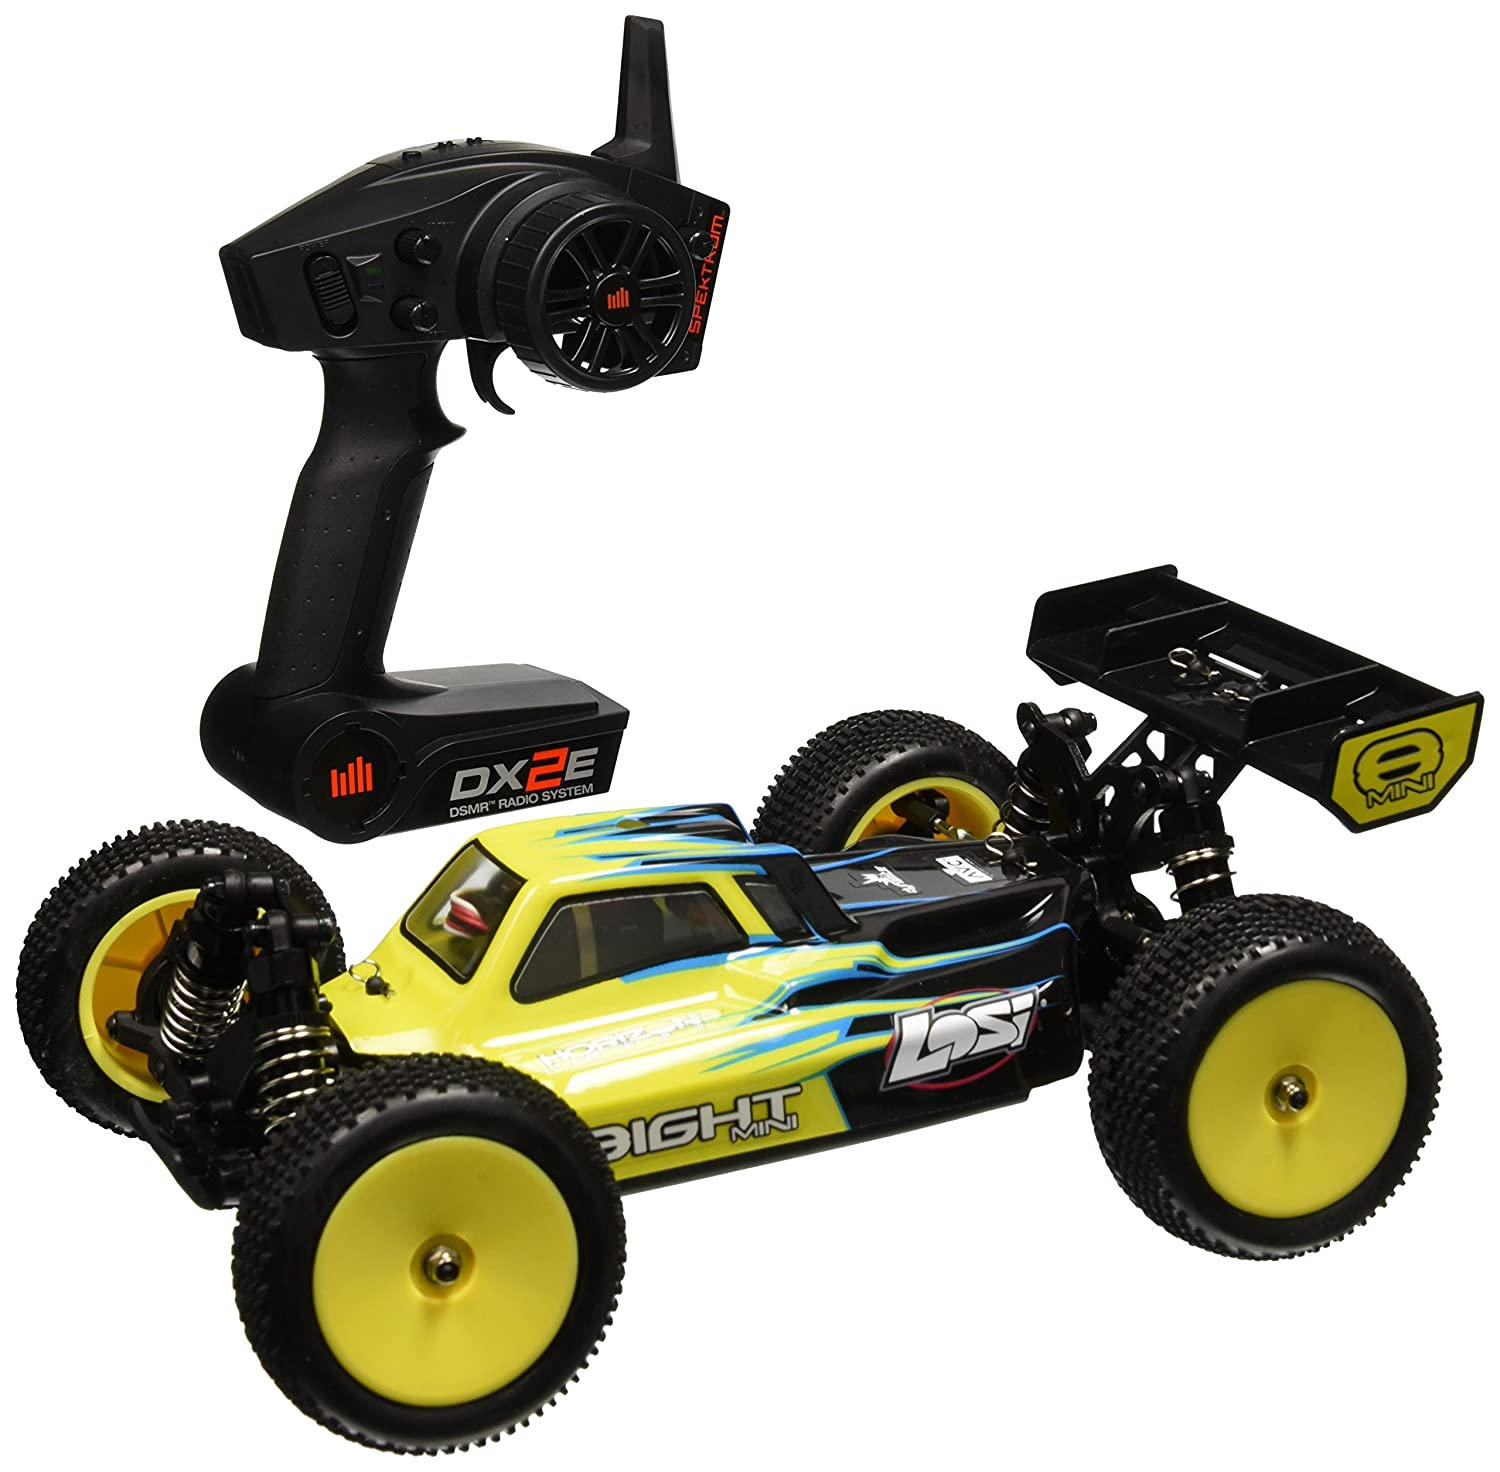 Amazon Team Losi Mini 8IGHT RTR AVC 4WD Buggy Vehicle 1 14 Scale Blue Toys & Games